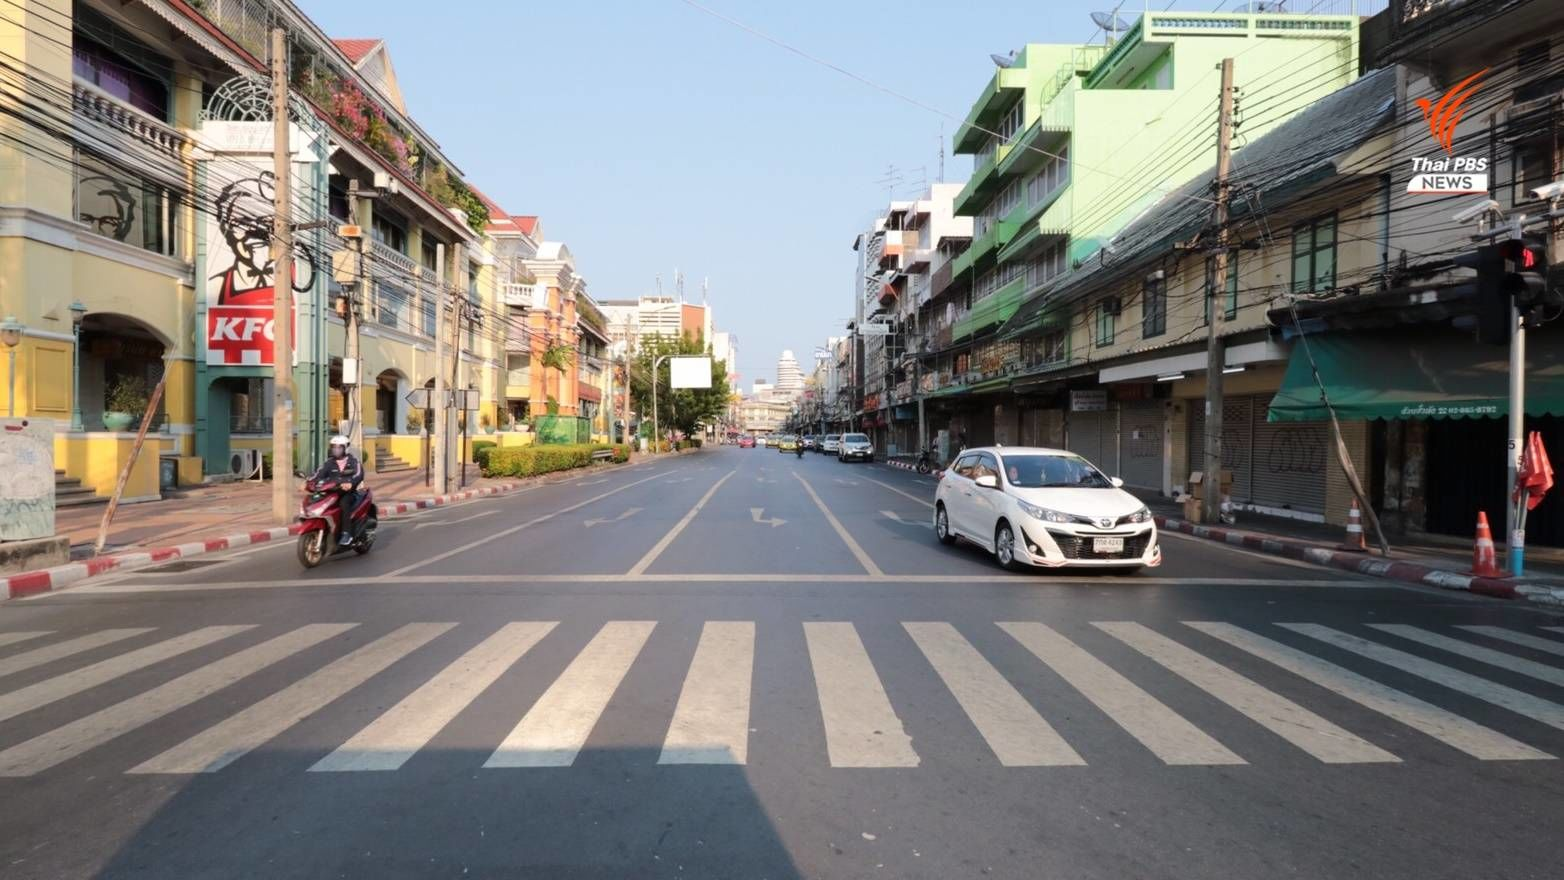 Foreigners in Thailand worried about their security | The Thaiger